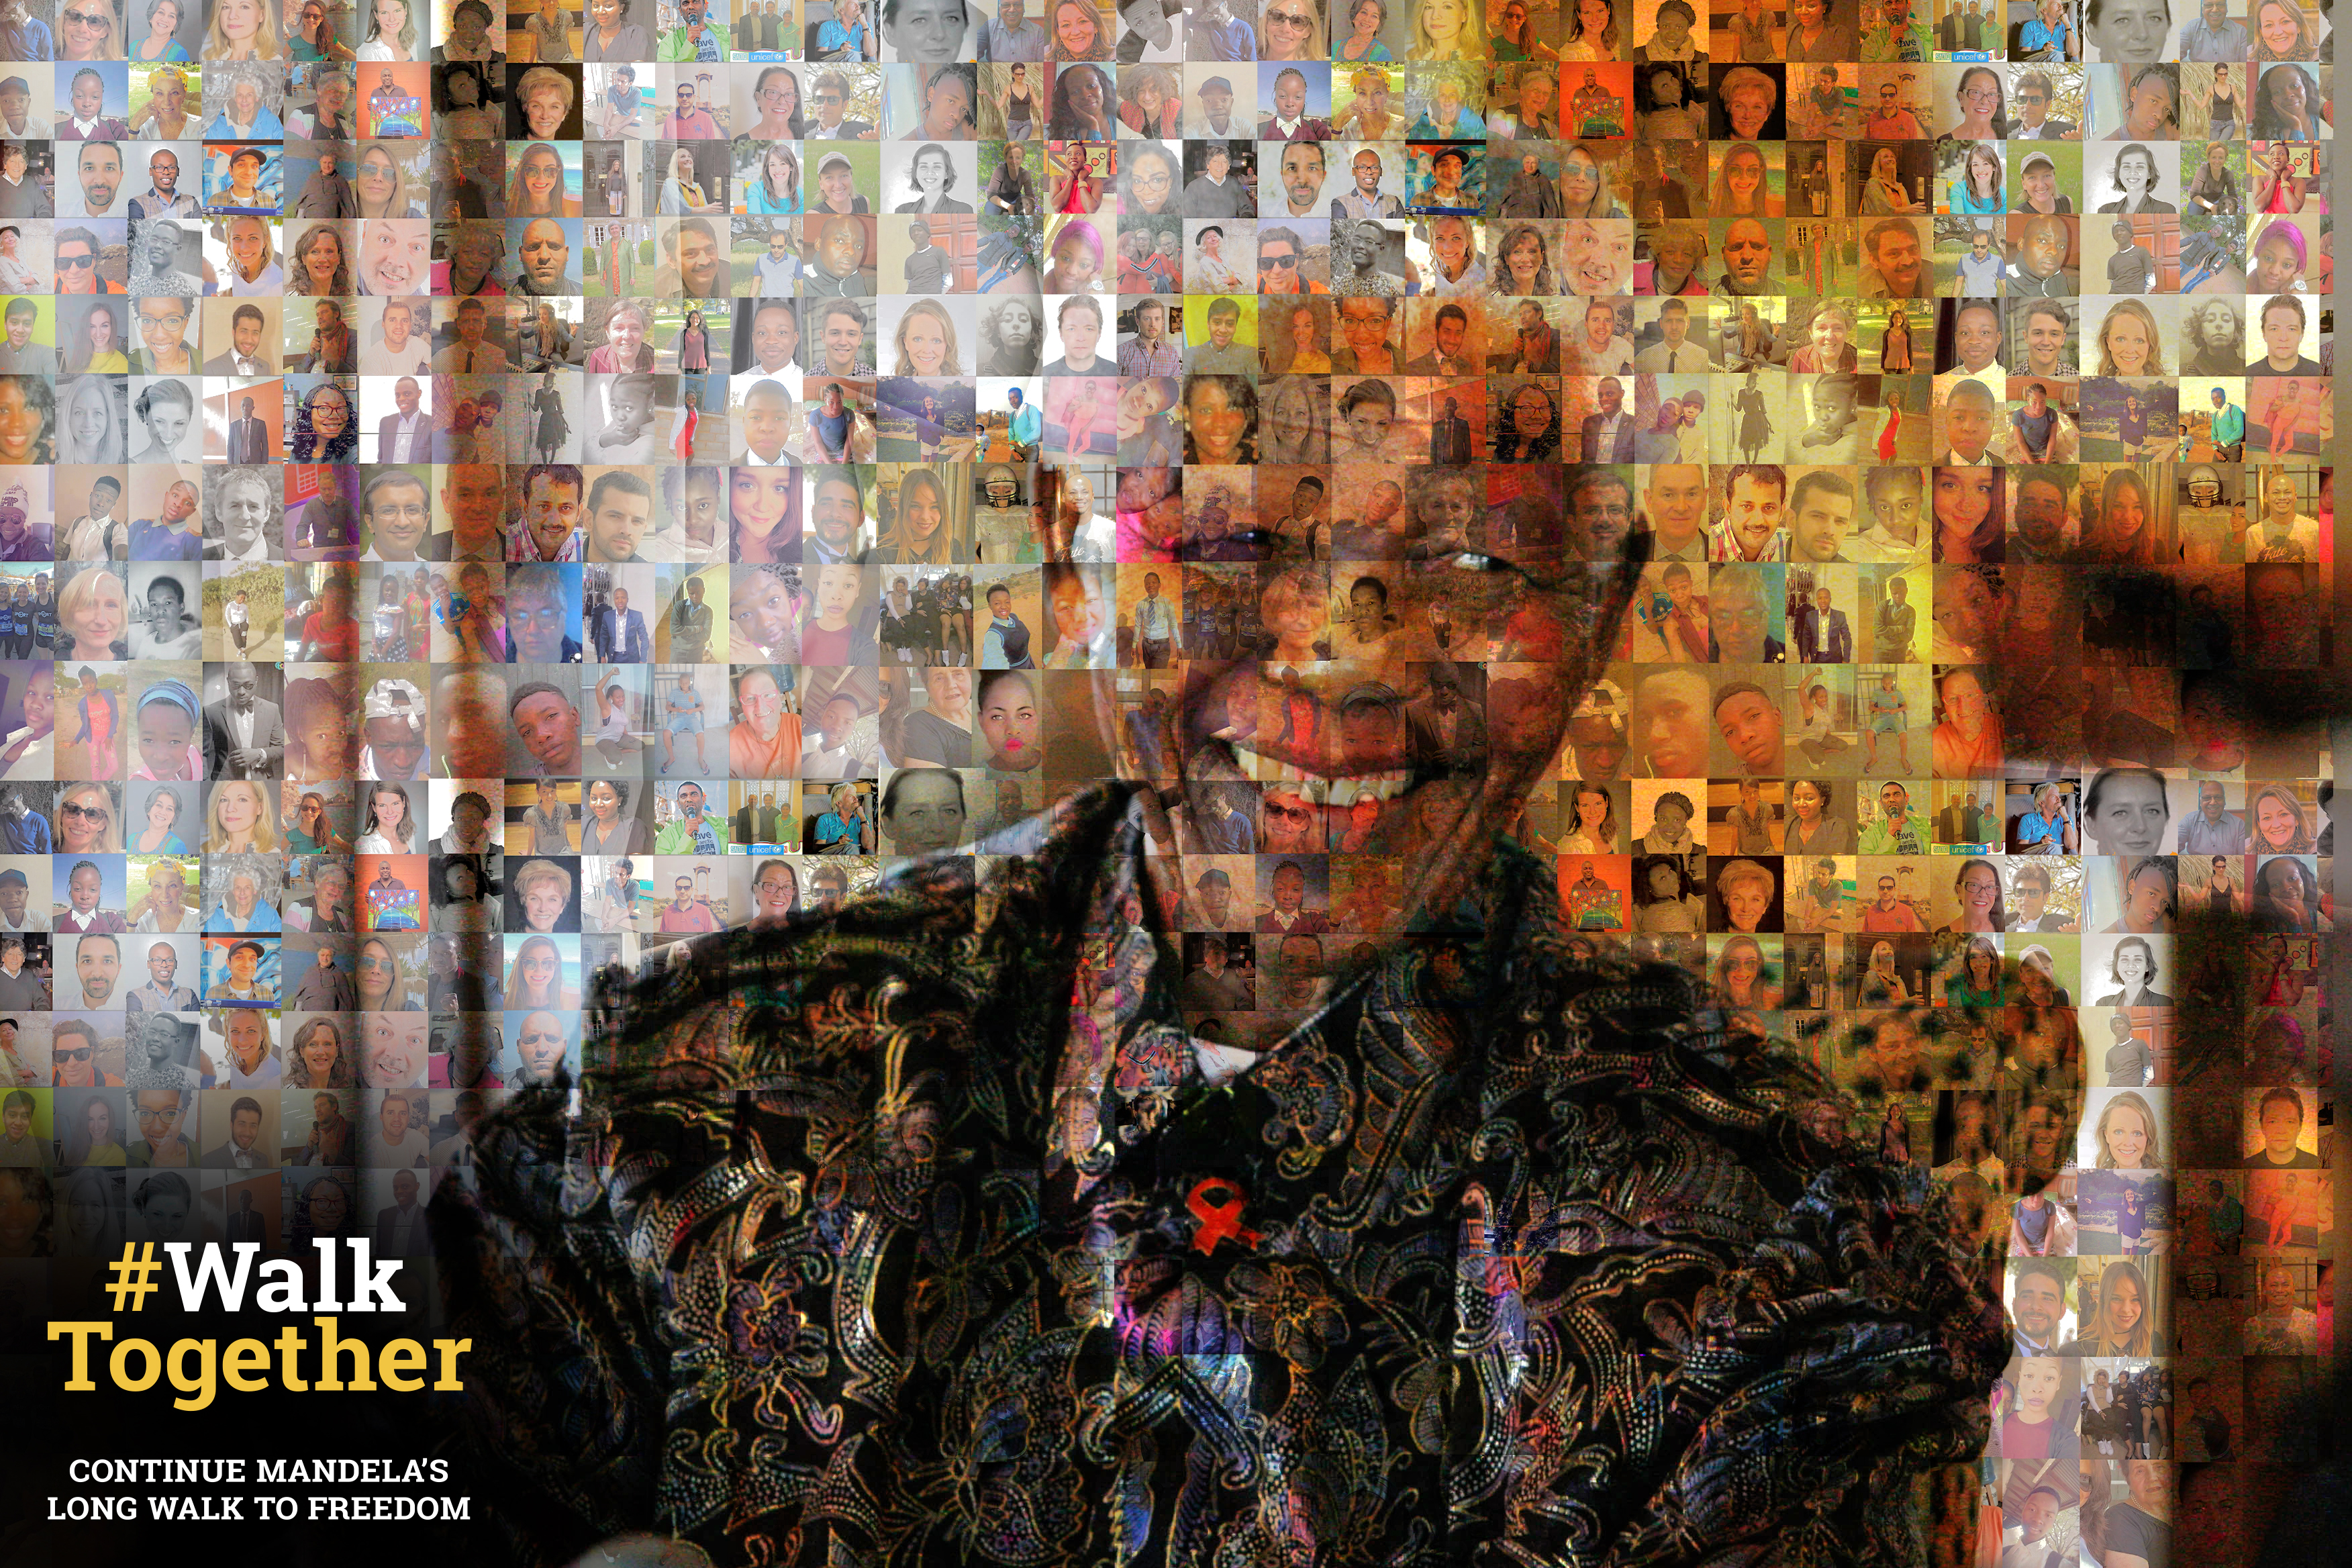 An image of Nelson Mandela and the walk together logo